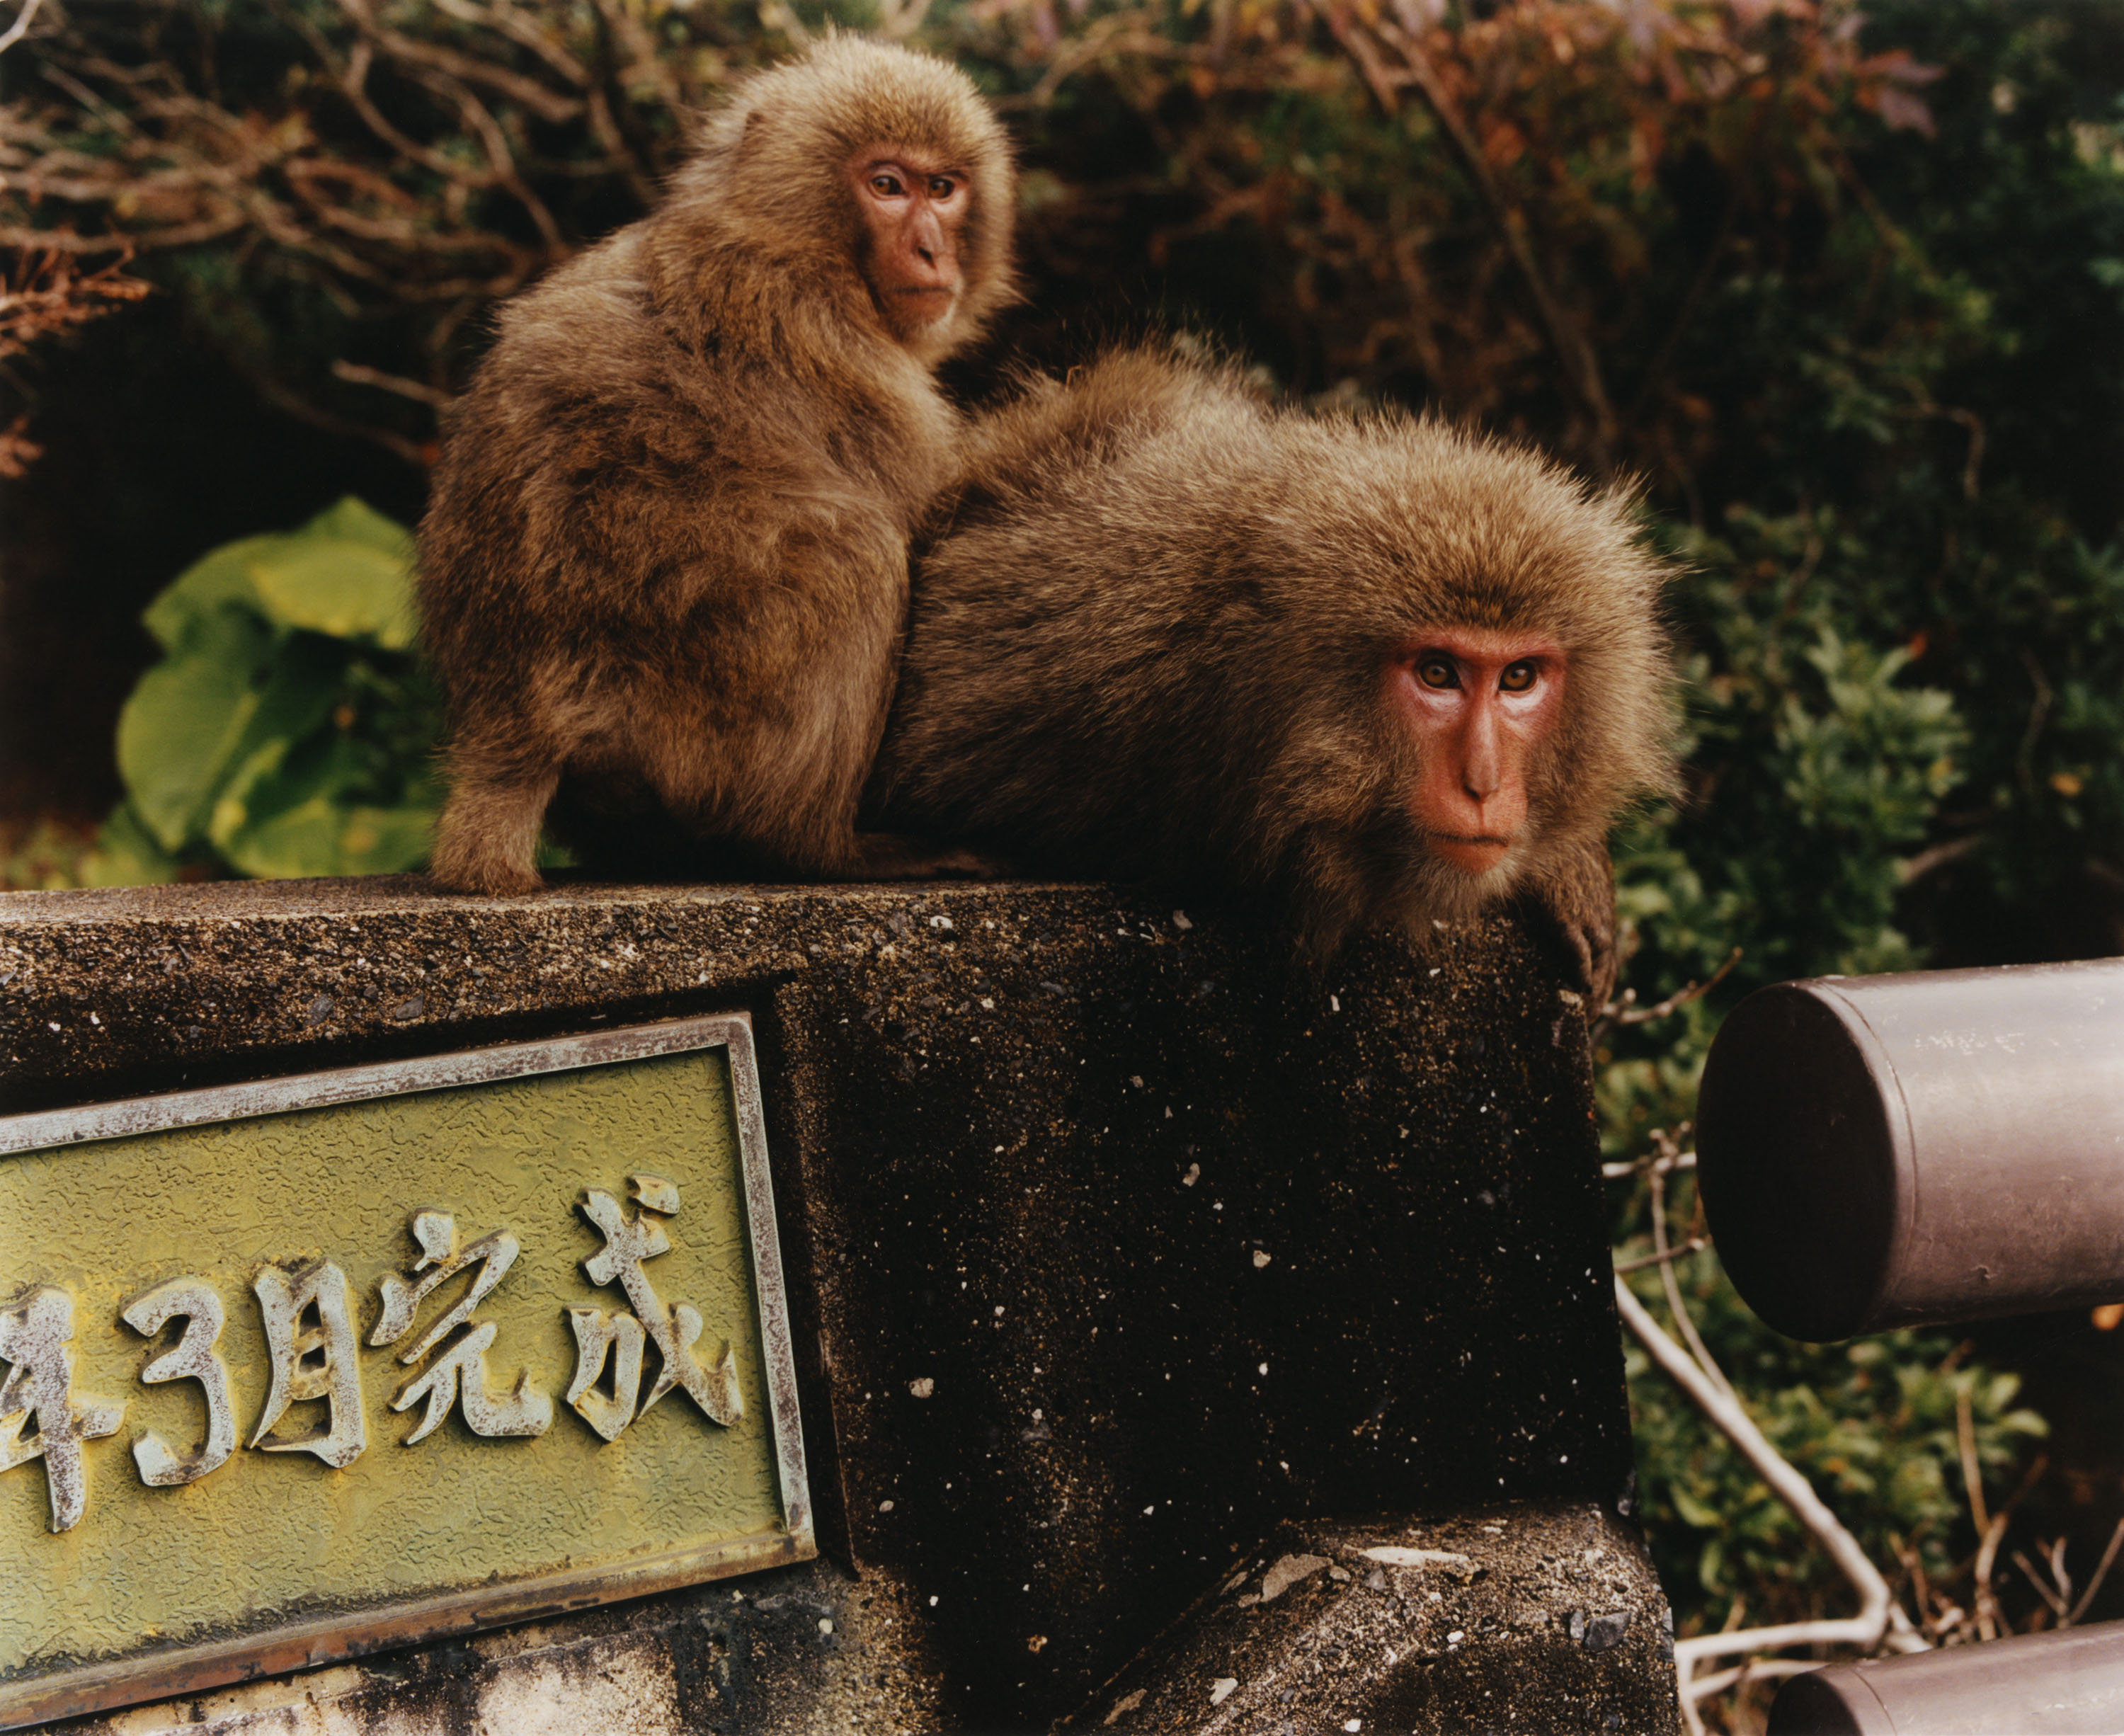 """Back in January 2020, I spent two weeks in Japan following researchers and students engaged in the study of what some would call the """"cultural behaviours"""" of Japanese macaques in three distinct regions of Japan. Their research focuses on the notion that those monkeys could transmit ritual-likes habits from one generation to another, from bathing in hot springs in the touristic park of Jigokudani, to washing sweet potatoes on the isolated island of Ko-Jima, to riding deers on the island of Yakushima. *{Article written by Ben Crair. Photo assistant : Emil Kosuge. Special thanks to Natasha Lunn}* - © Maciek Pożoga"""